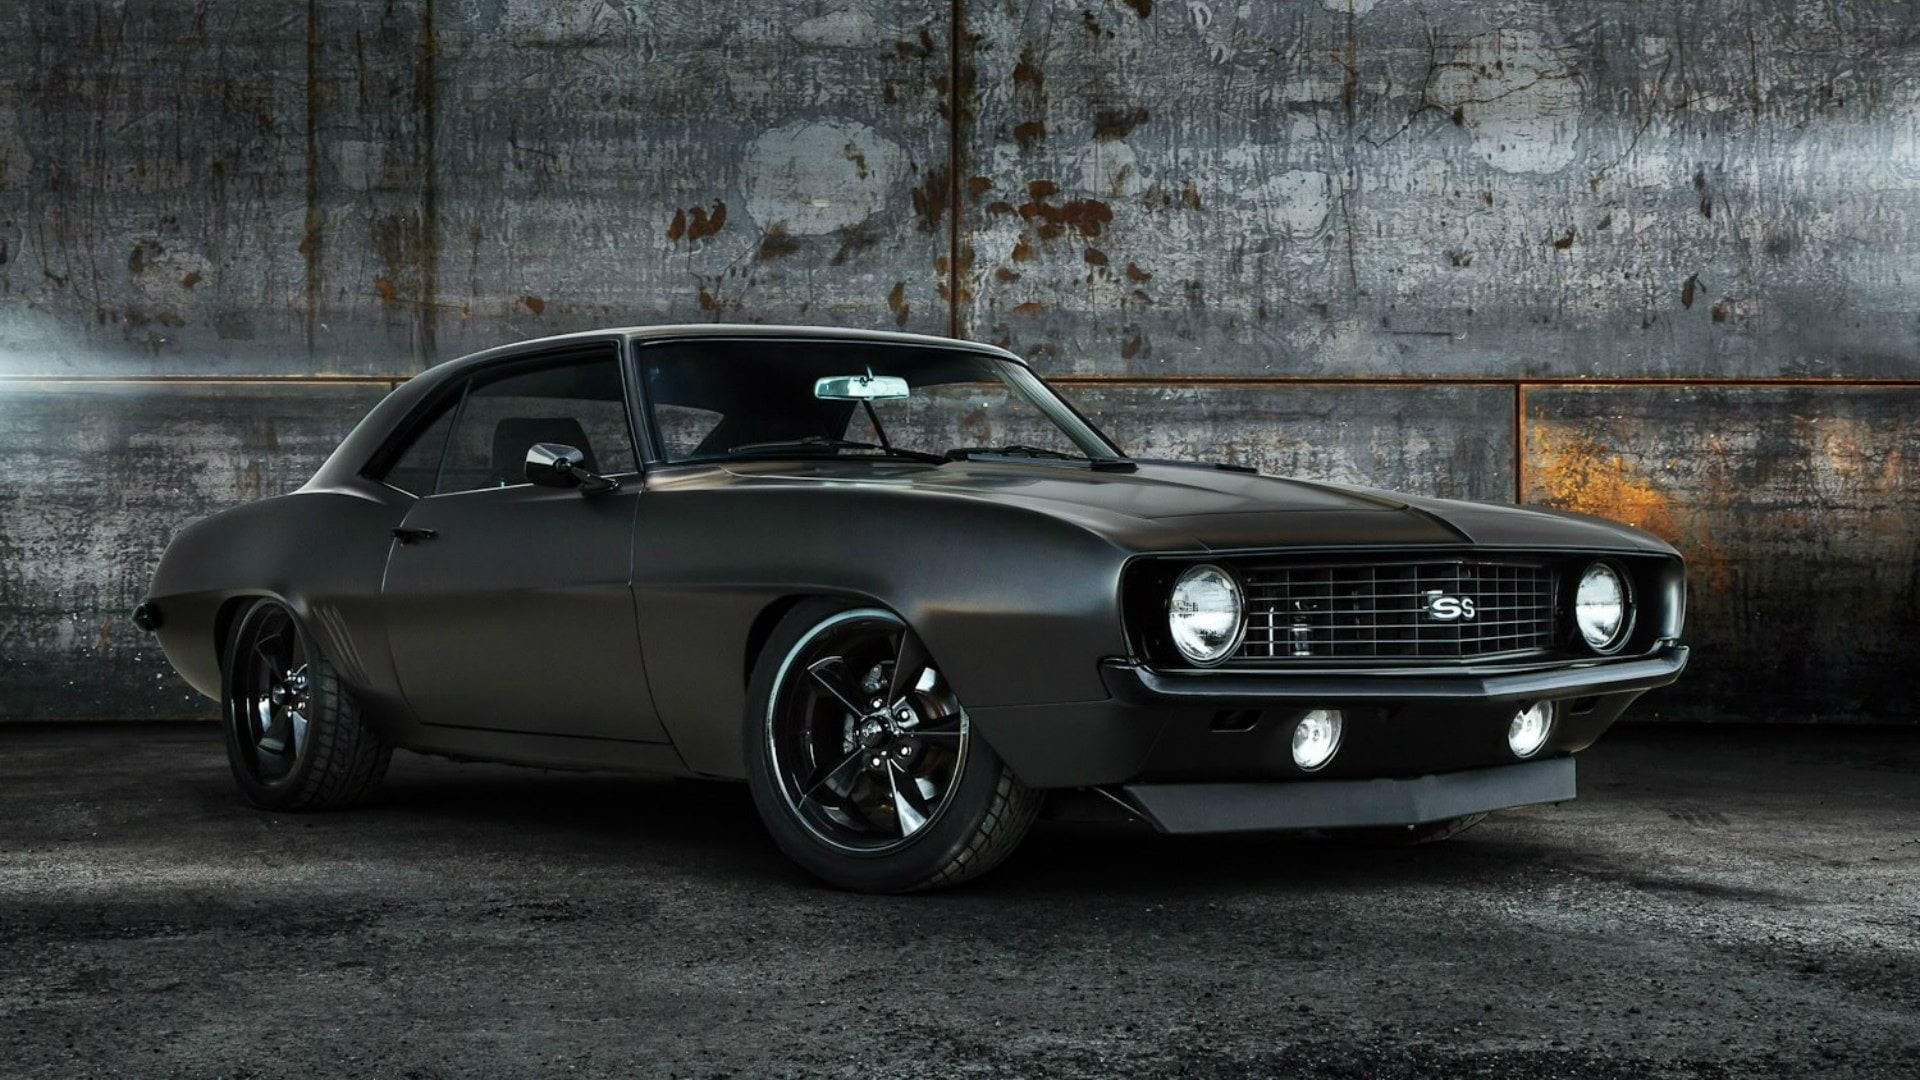 Best Looking Muscle Cars >> 69 Camaro Ss Wallpaper (56+ images)